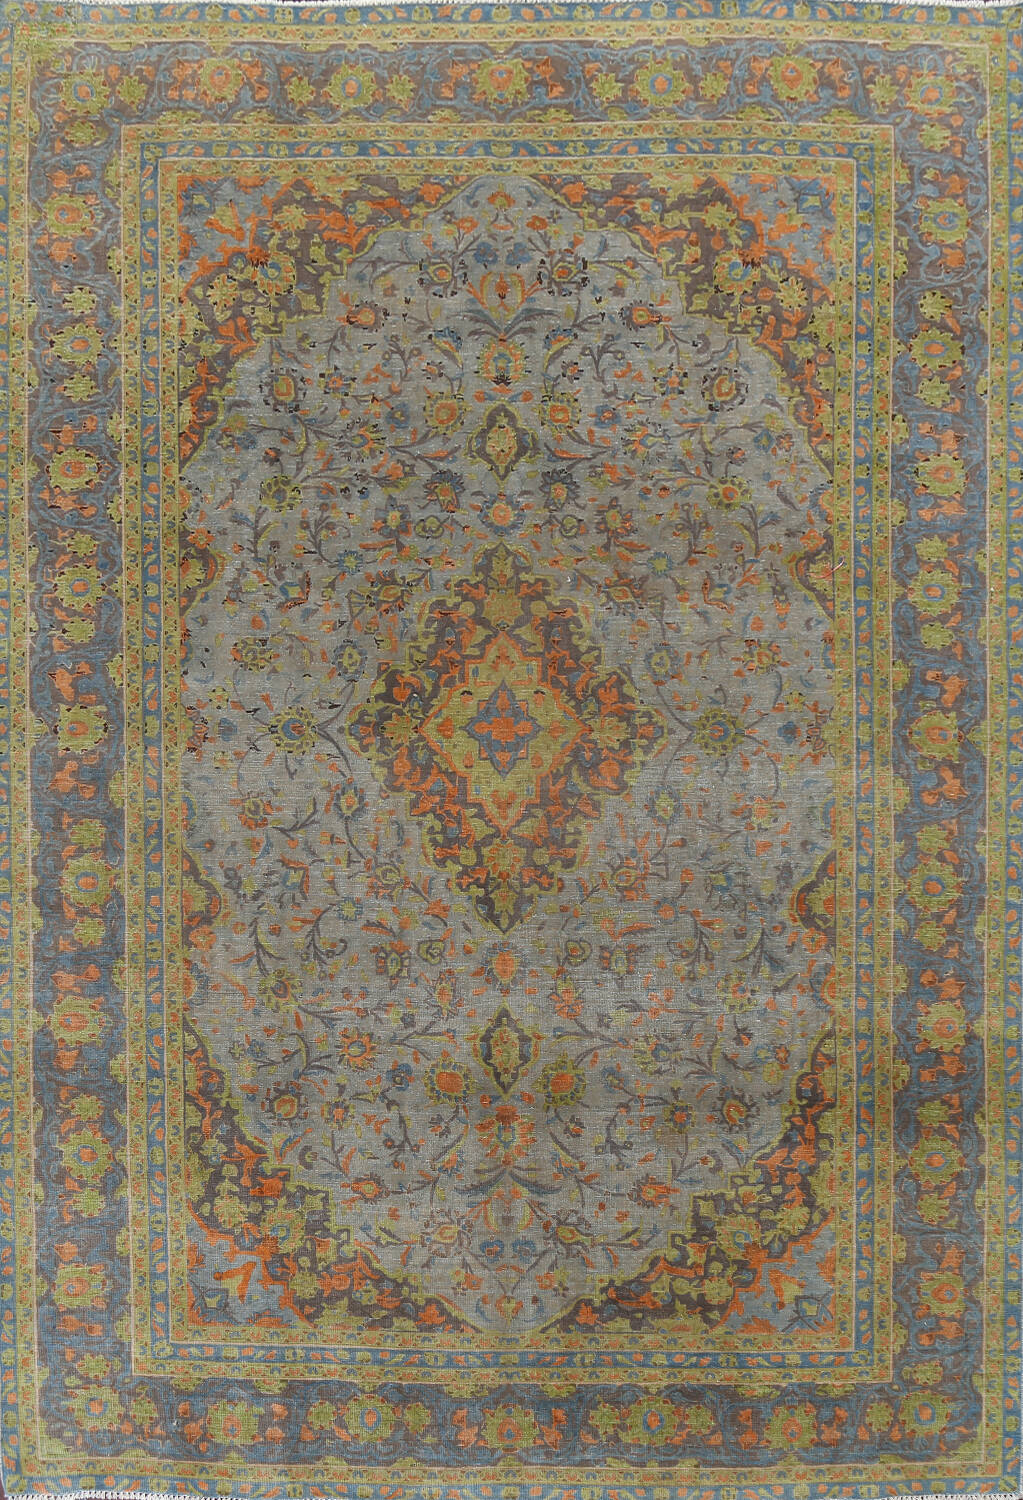 Distressed Over-Dye Kashan Persian Area Rug 9x12 image 1